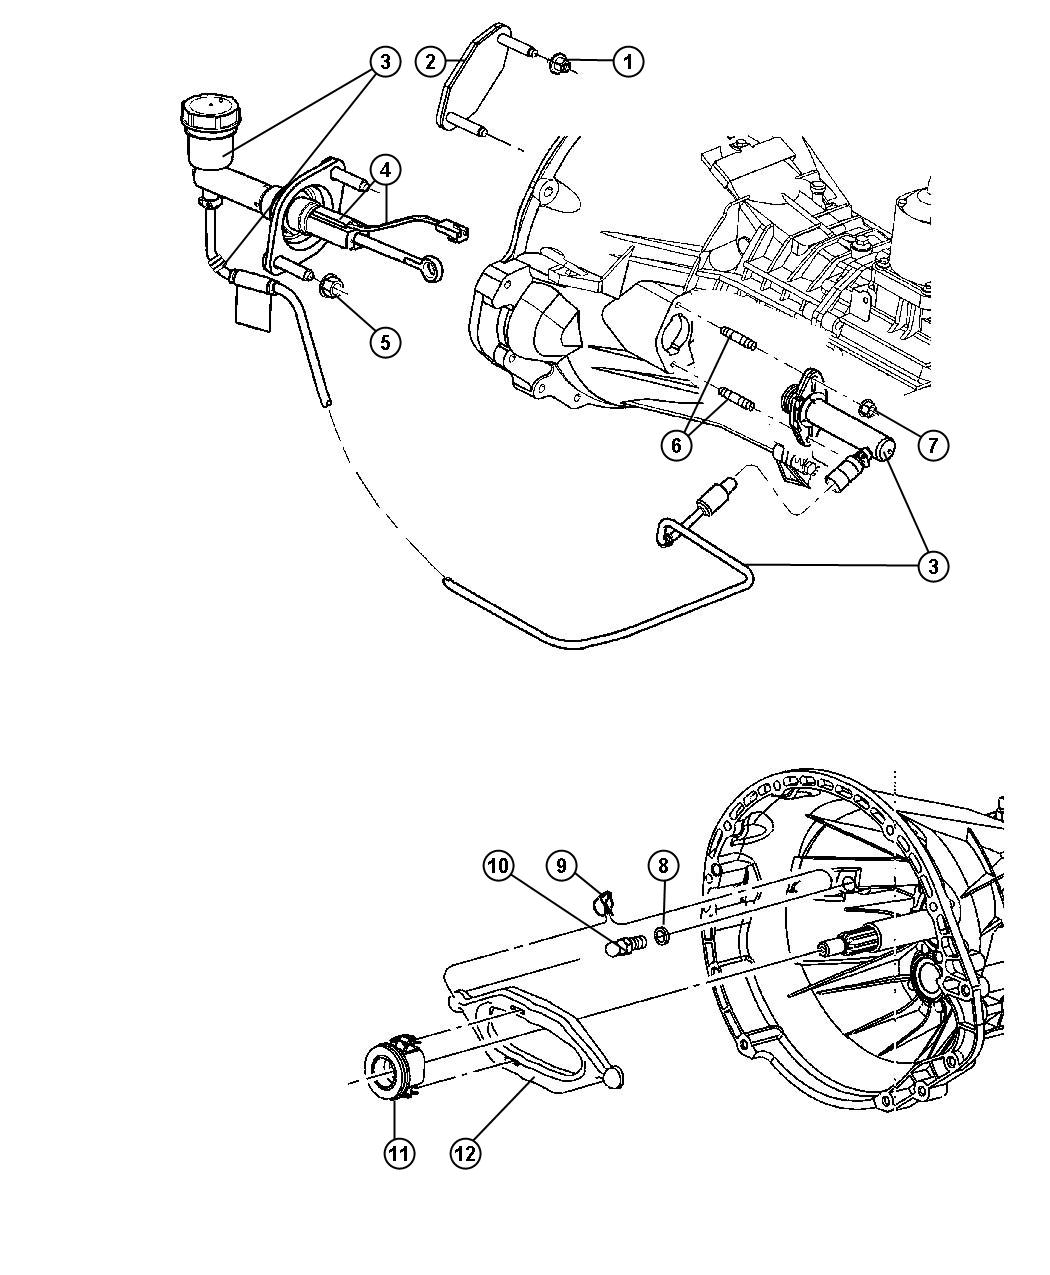 Controls,Hydraulic Clutch Diagram